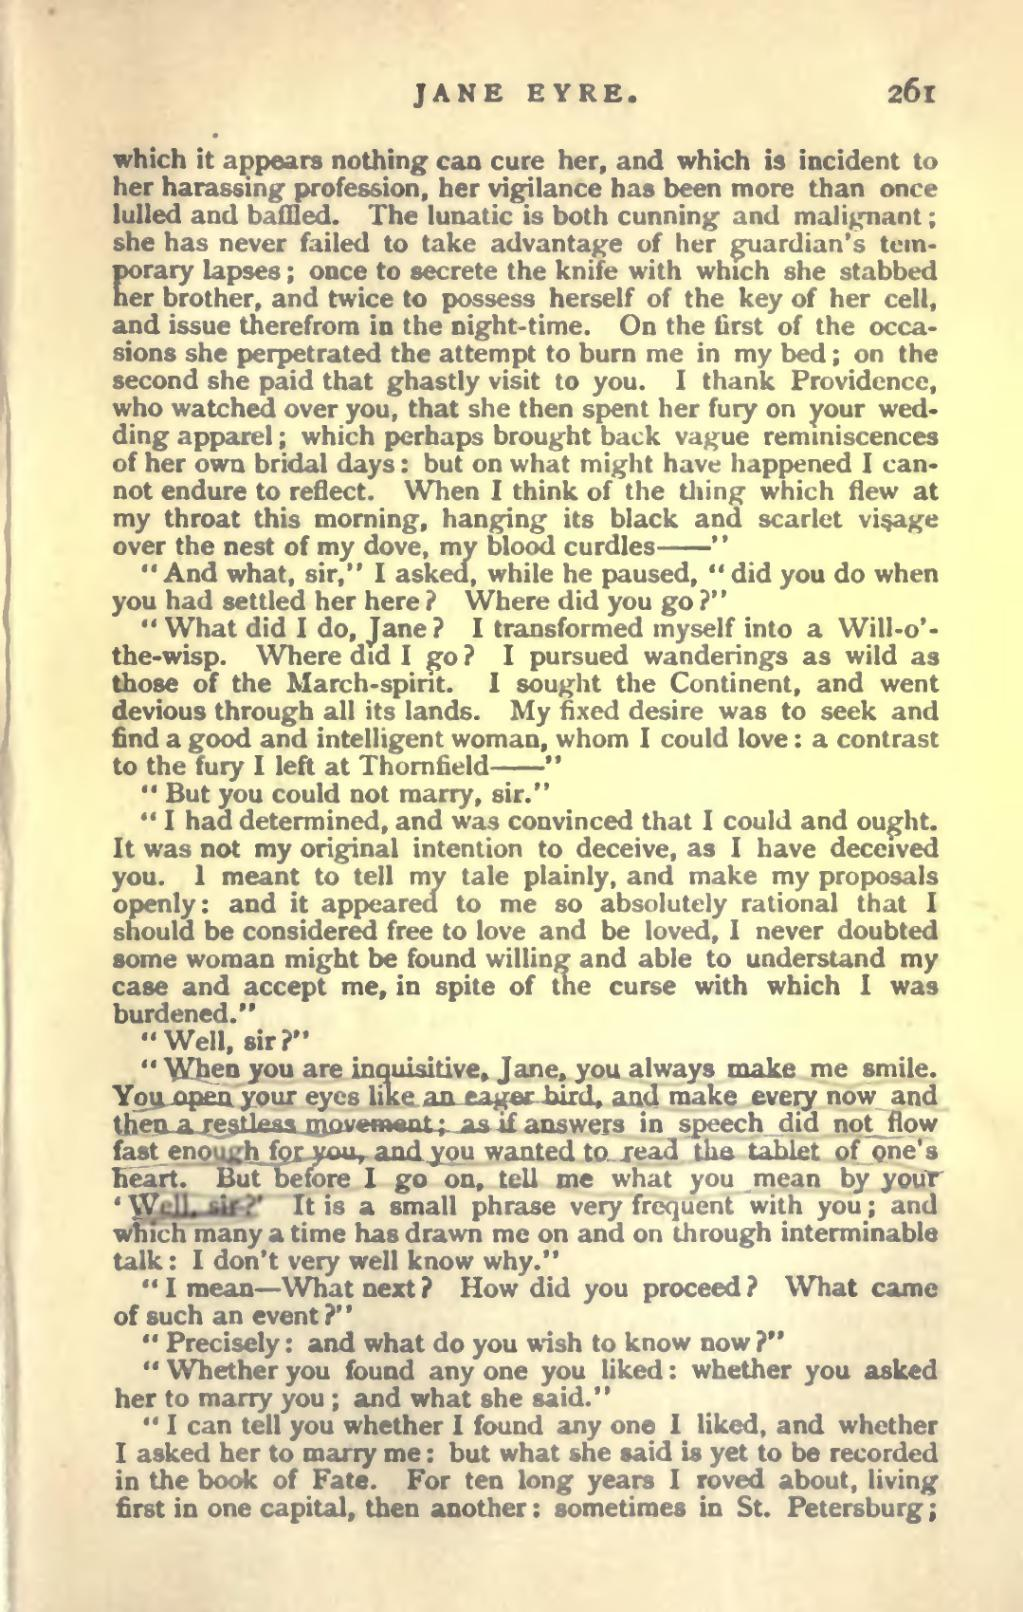 Page Jane Eyre Djvu 265 Wikisource The Free Online Library